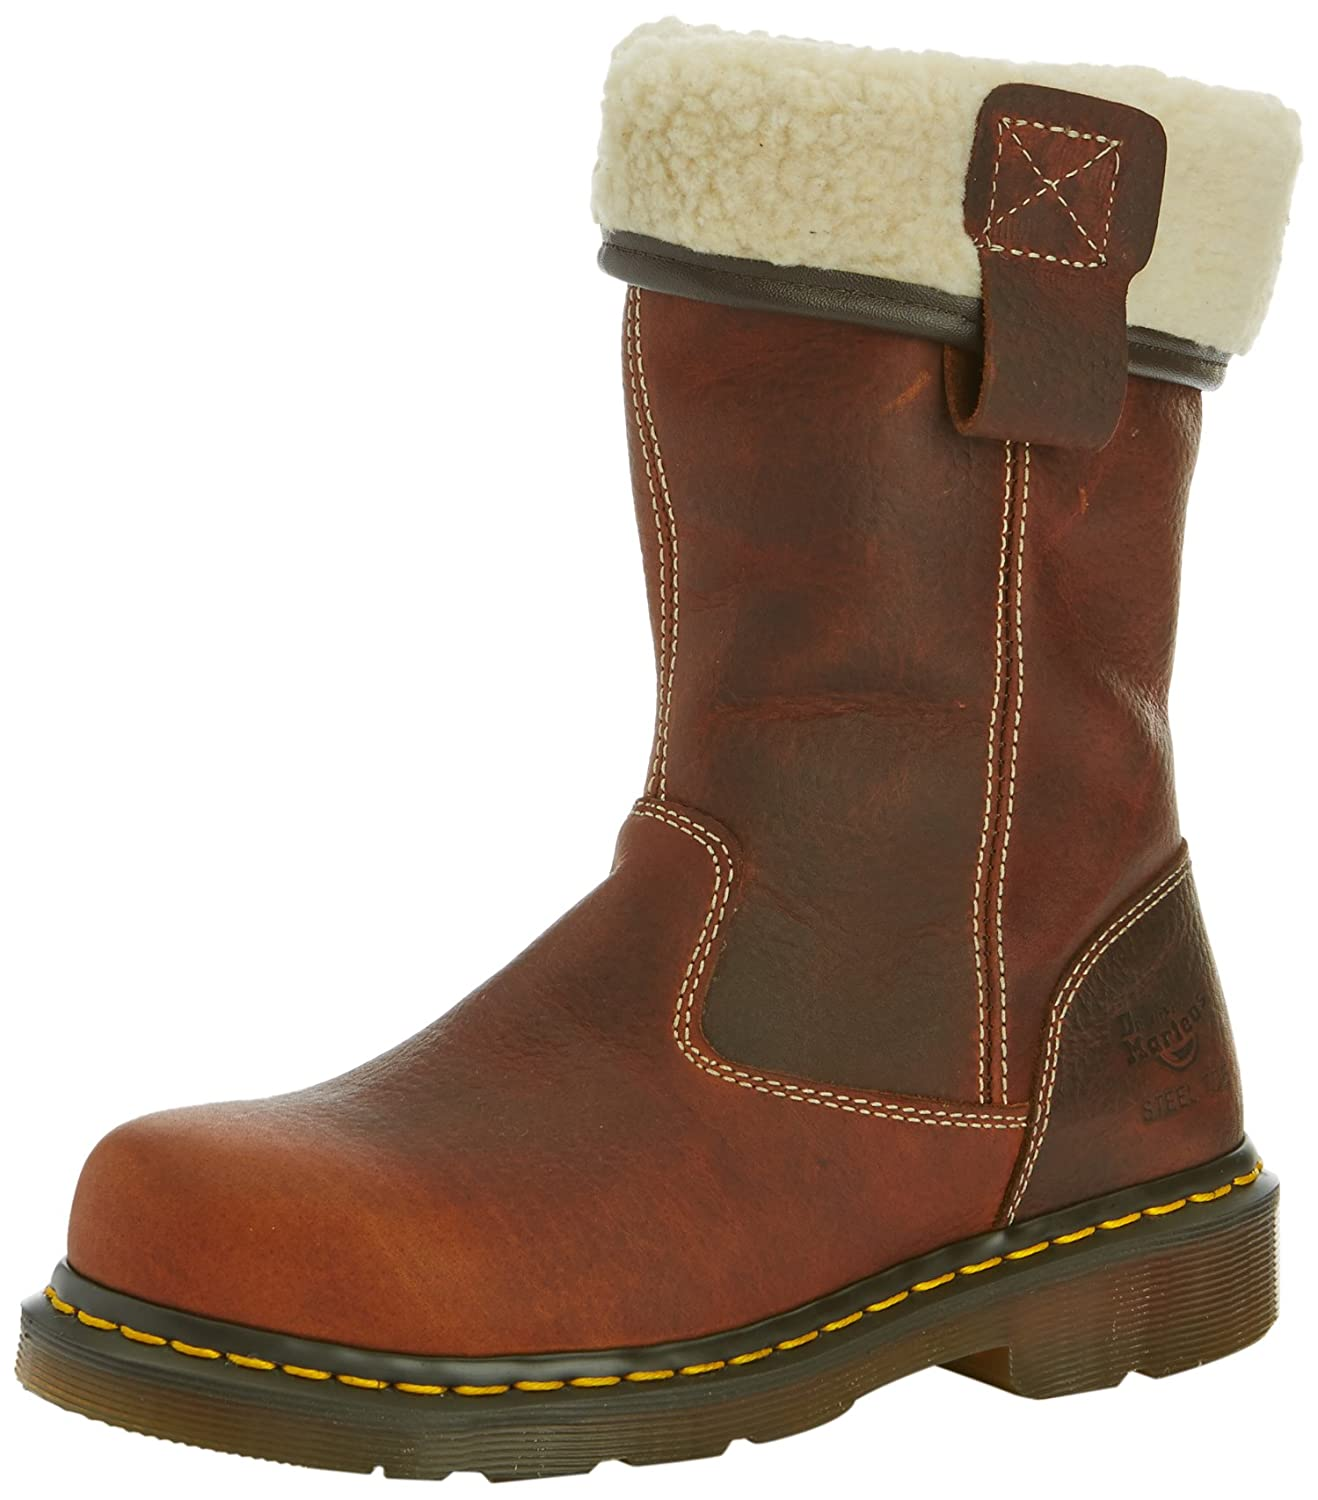 Dr. Marten's Rosa, Women's Safety Boots Women' s Safety Boots Dr. Martens Industrial 6807